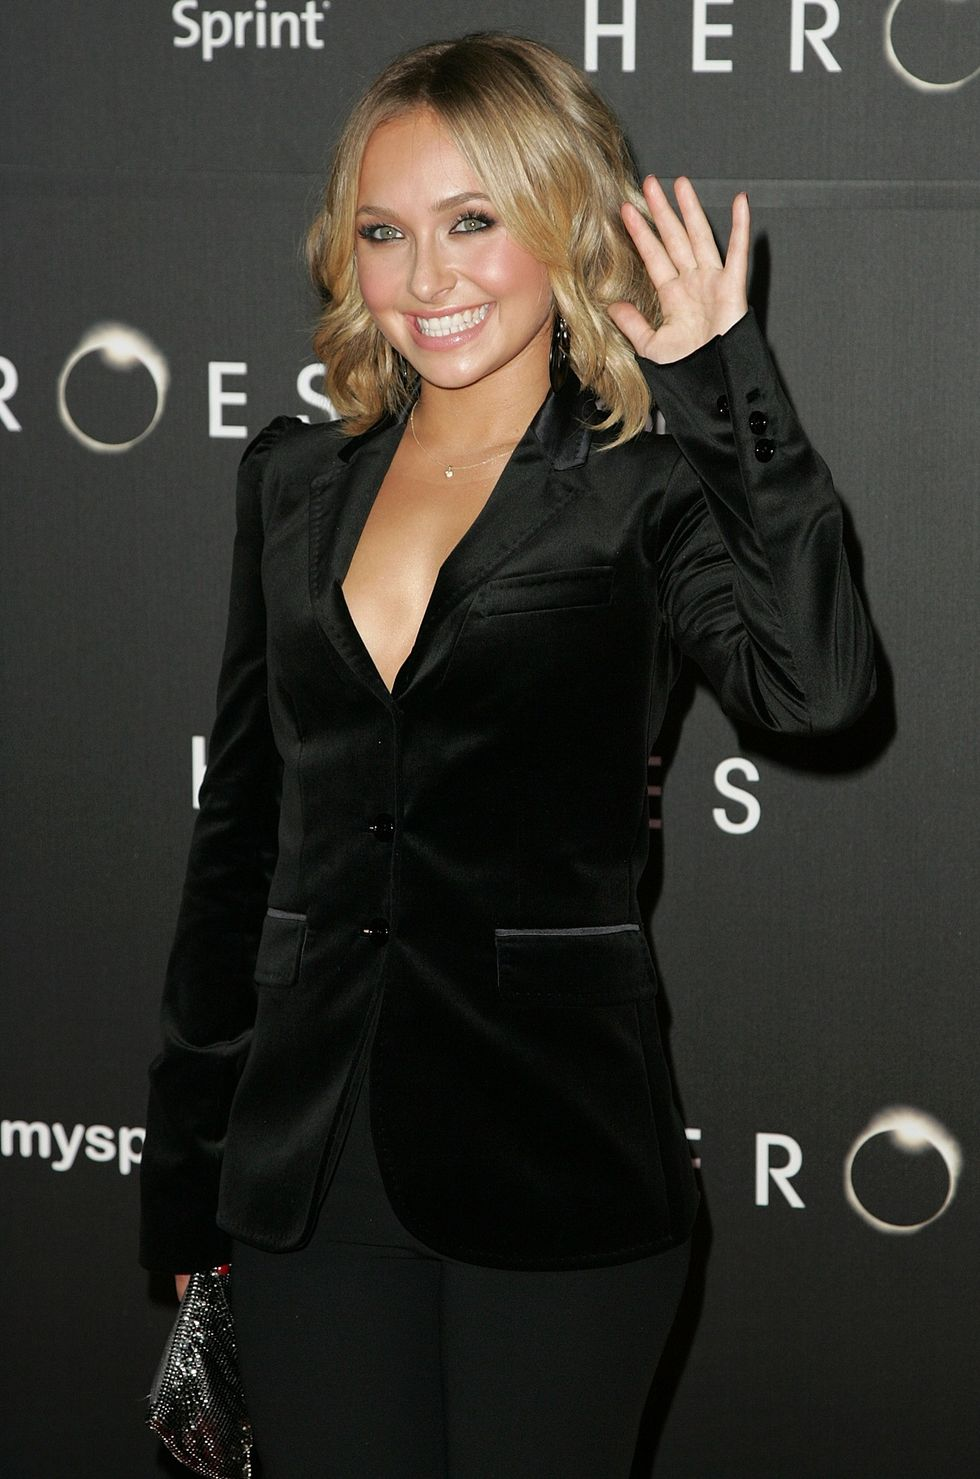 hayden-panettiere-heroes-countdown-to-the-premiere-party-in-los-angeles-01